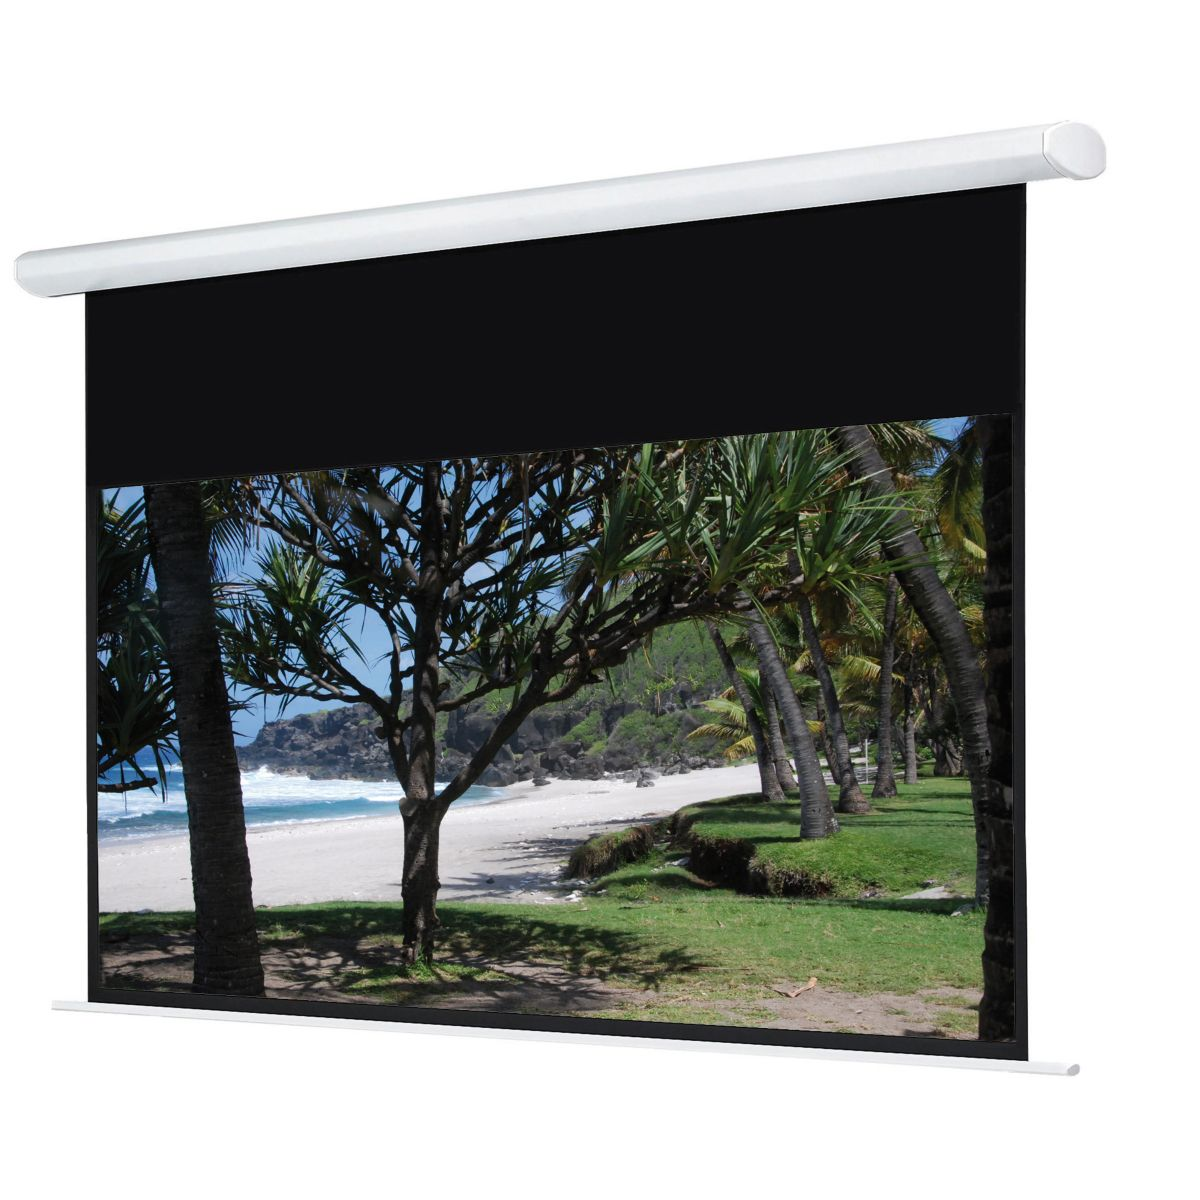 Ecran de projection oray hcm4rb1 112*200 motoris� 16:9 - 15% de remise imm�diate avec le code : deal15 (photo)